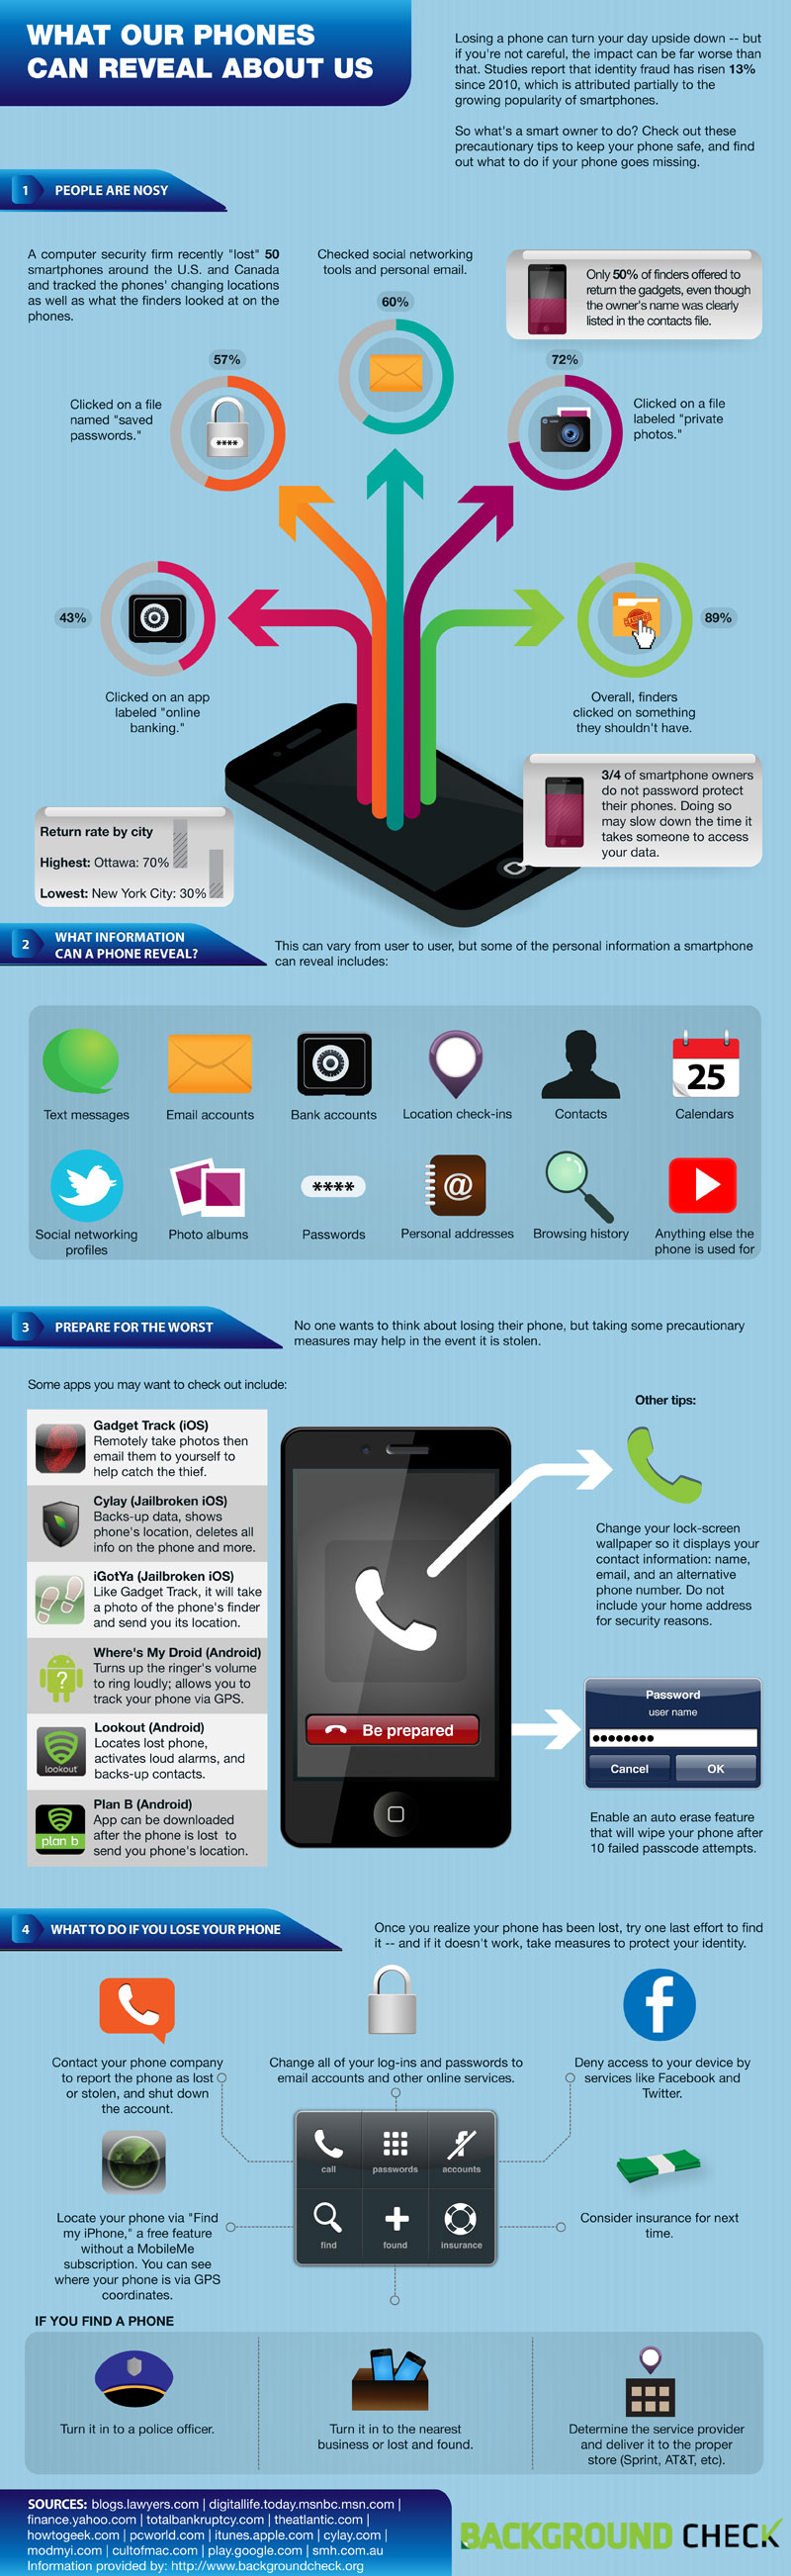 iphone-android-security-issues-2012-info